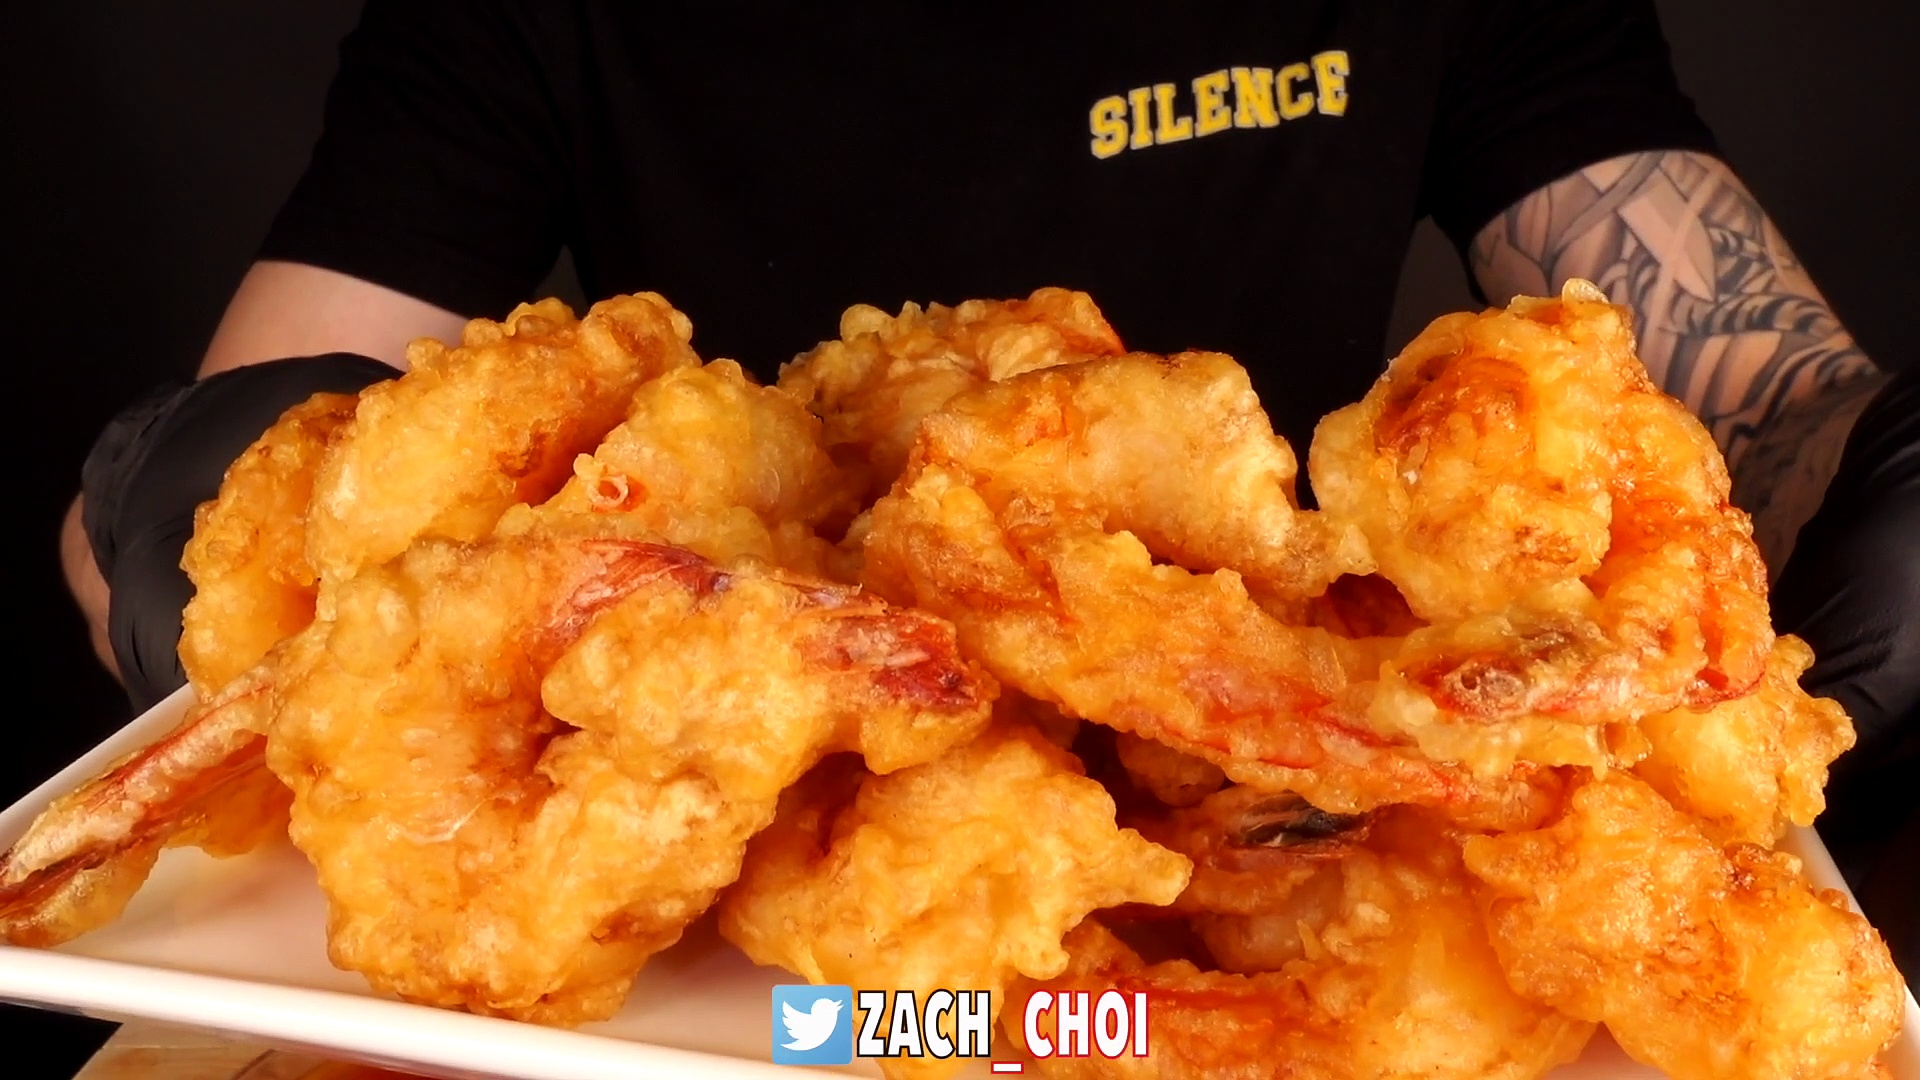 ASMR SWEET CHILI FRIED SHRIMP & FRIED CHICKEN MUKBANG (No Talking) EATING SOUNDS | Zach Choi ASMR